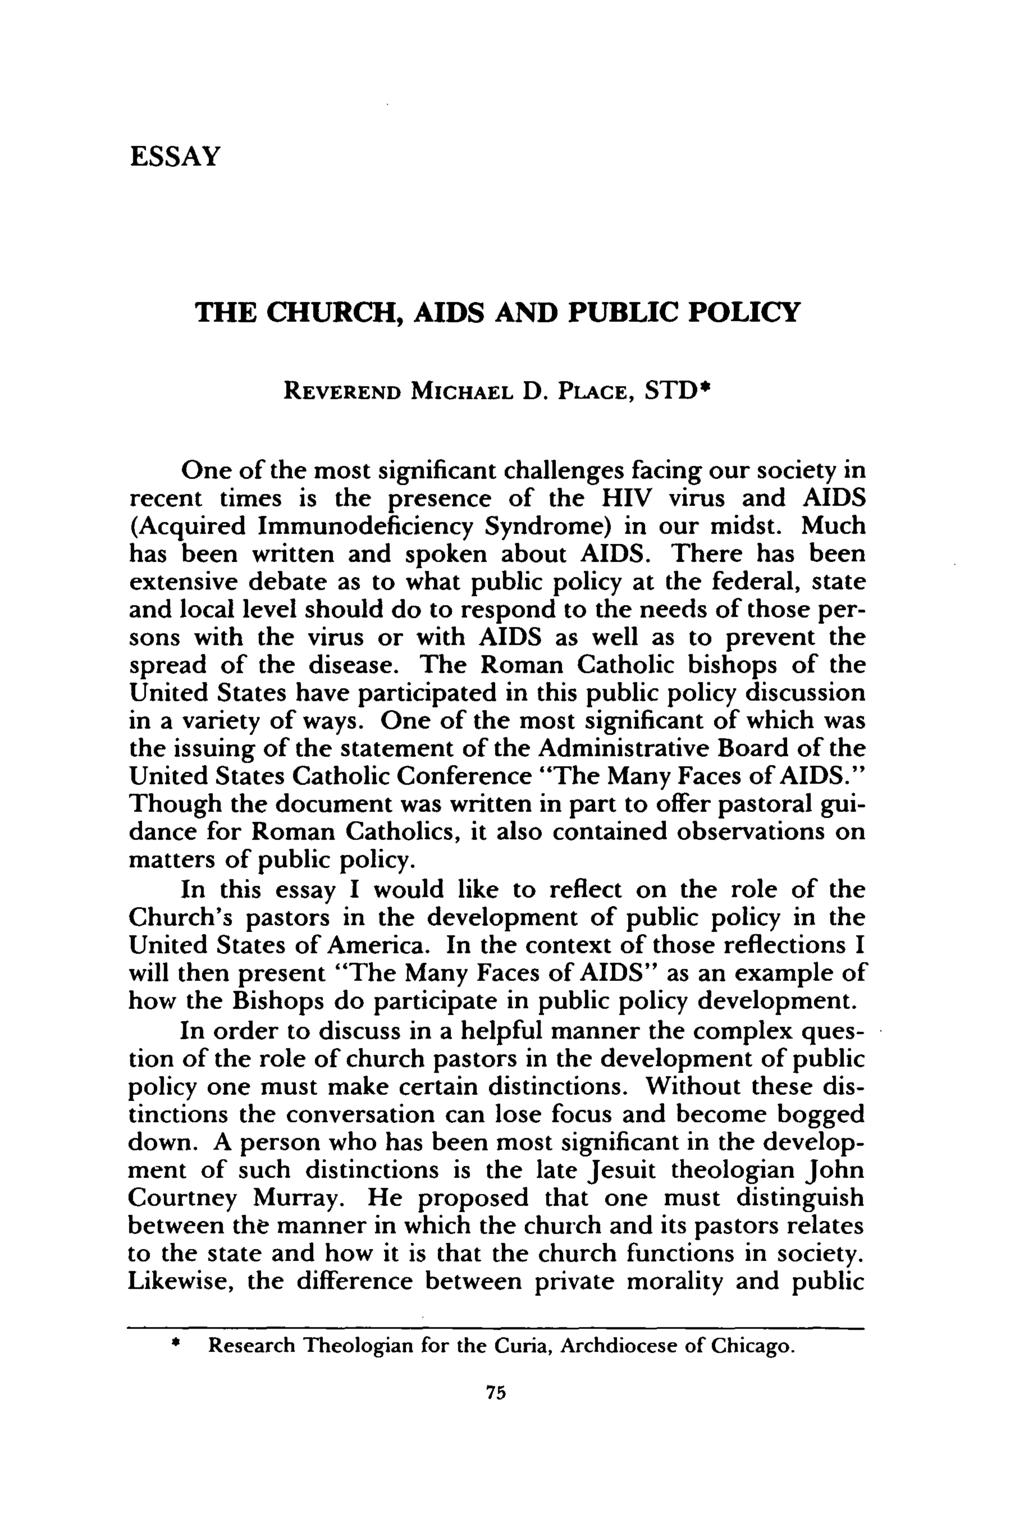 ESSAY THE CHURCH, AIDS AND PUBLIC POLICY REVEREND MICHAEL D.